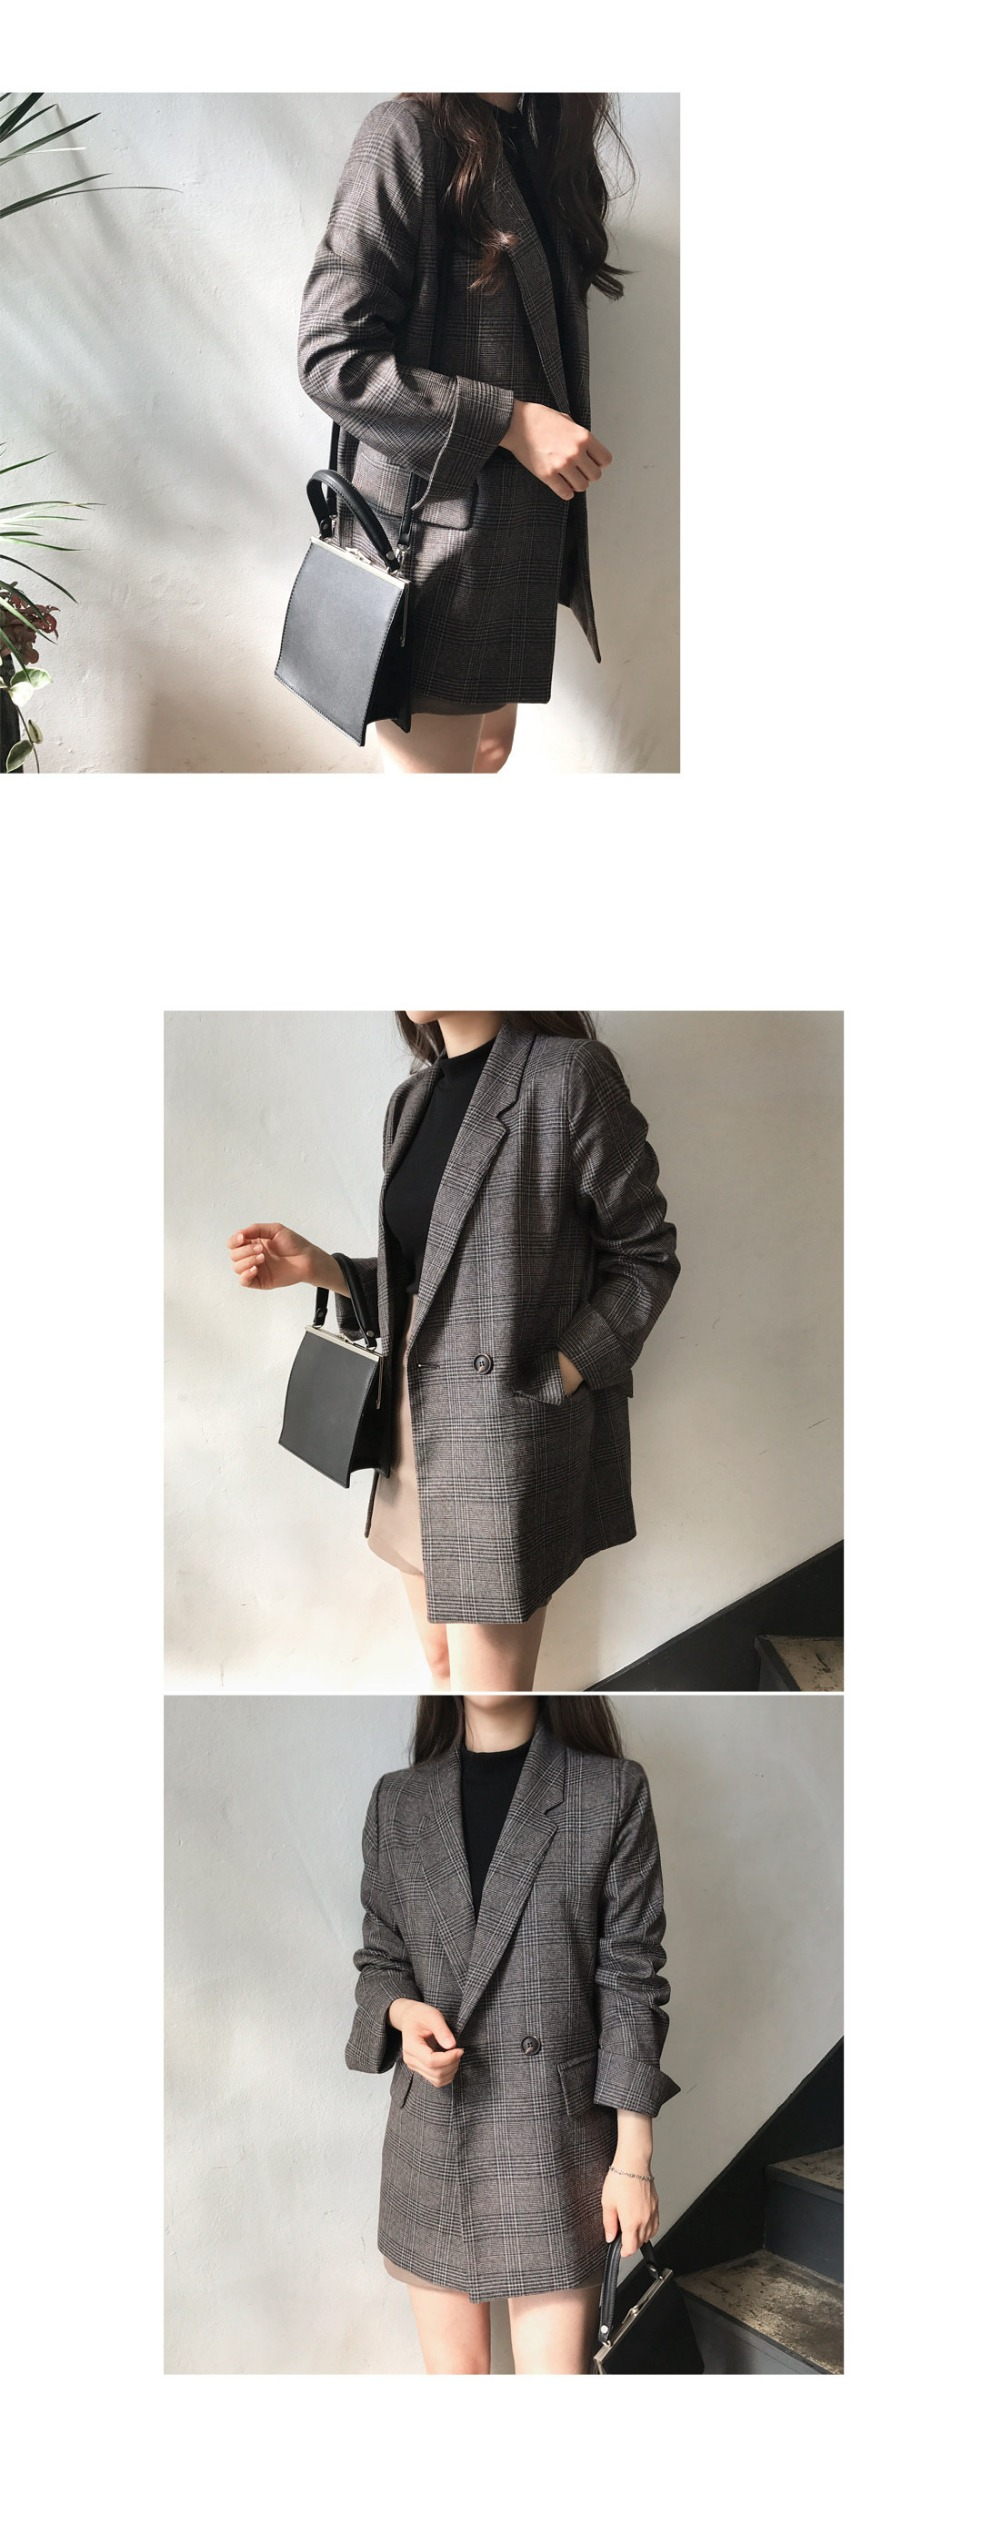 Women check long sleeve cotton jacket casual vintage coat plaid  blazer